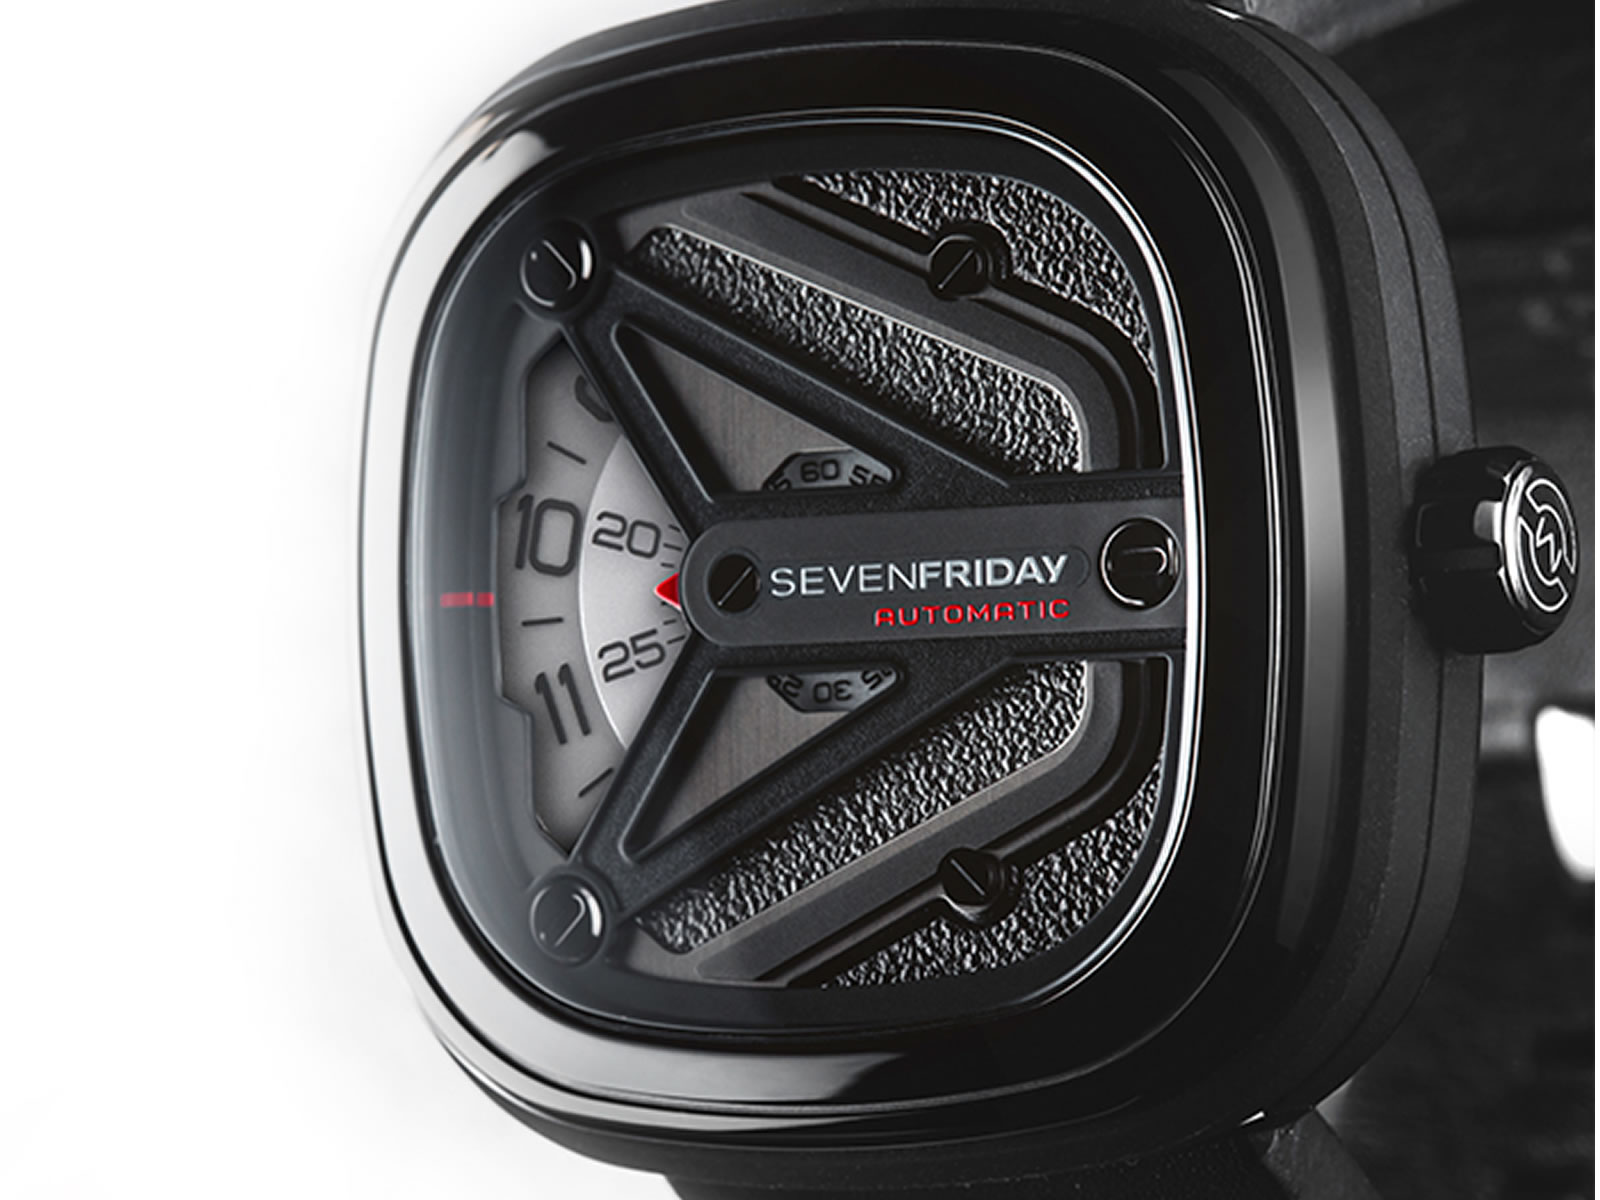 sevenfriday-m3-01-spaceship-edition-7-.jpg